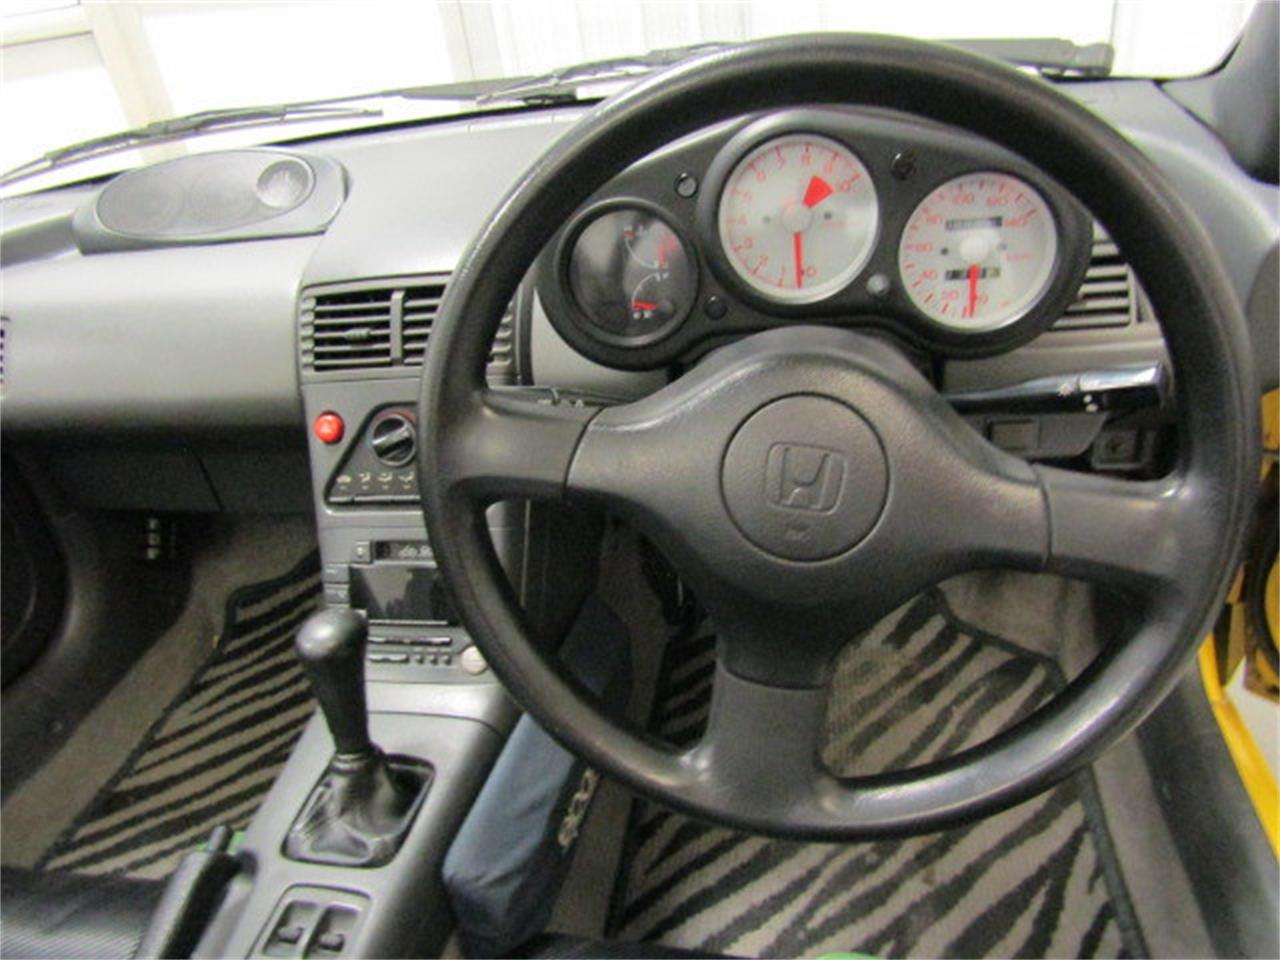 Large Picture of 1991 Honda Beat - $6,990.00 - JQ0U